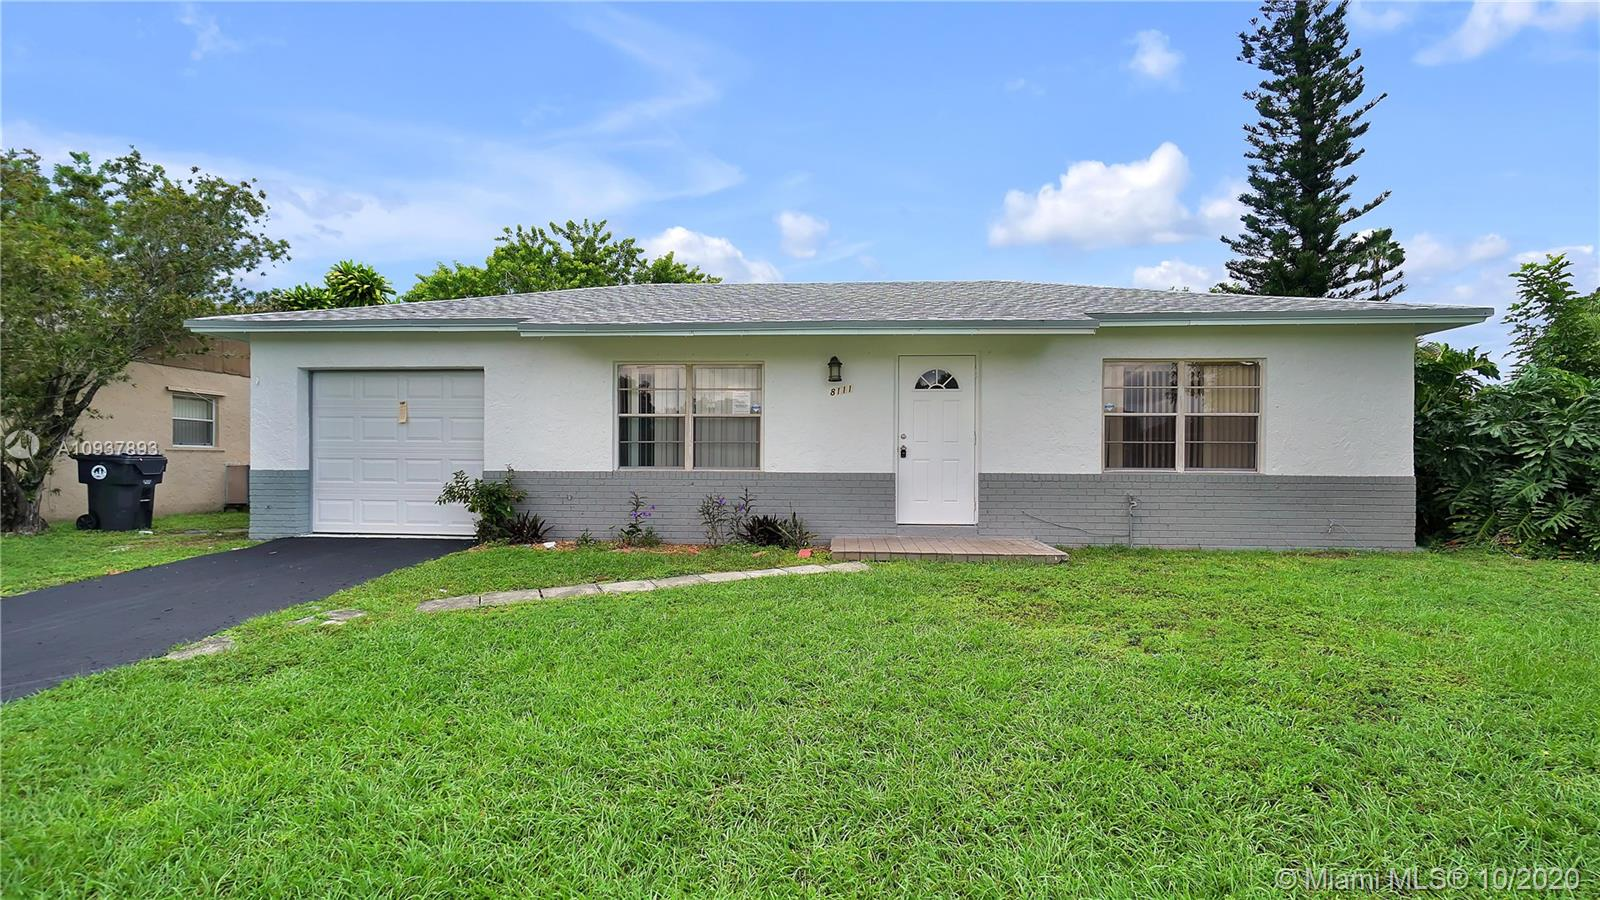 Updated home located in the beautiful community of North Lauderdale Village. This property features 3 bedrooms and 2 bathrooms, updated kitchen, new roof, central AC, large patio, 1-car garage, spacious bedrooms. Move in ready! Close to all major amenities, jobs, highways, and shopping centers. Nice and quiet community with great neighbors.